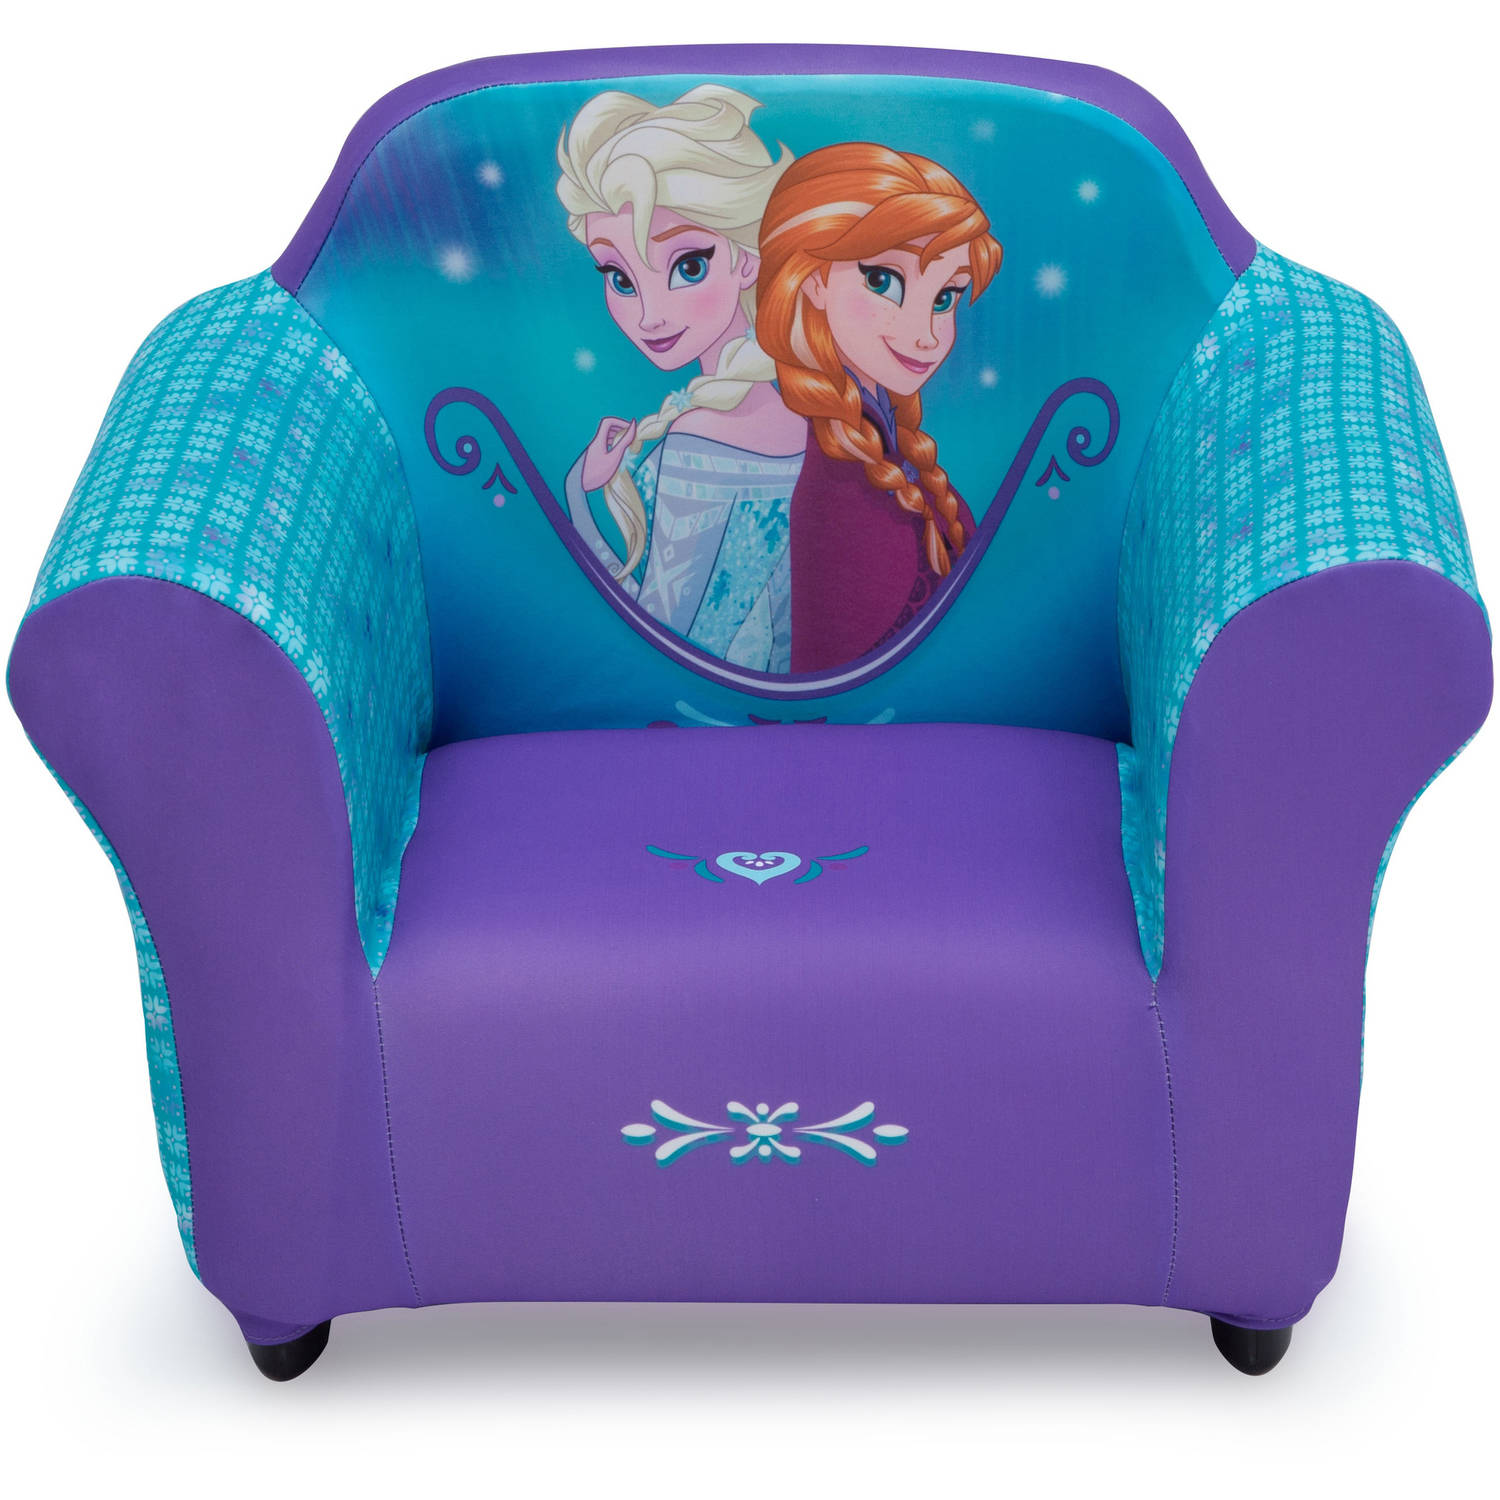 Disney Frozen Upholstered Chair (with Sculpted Plastic Frame)